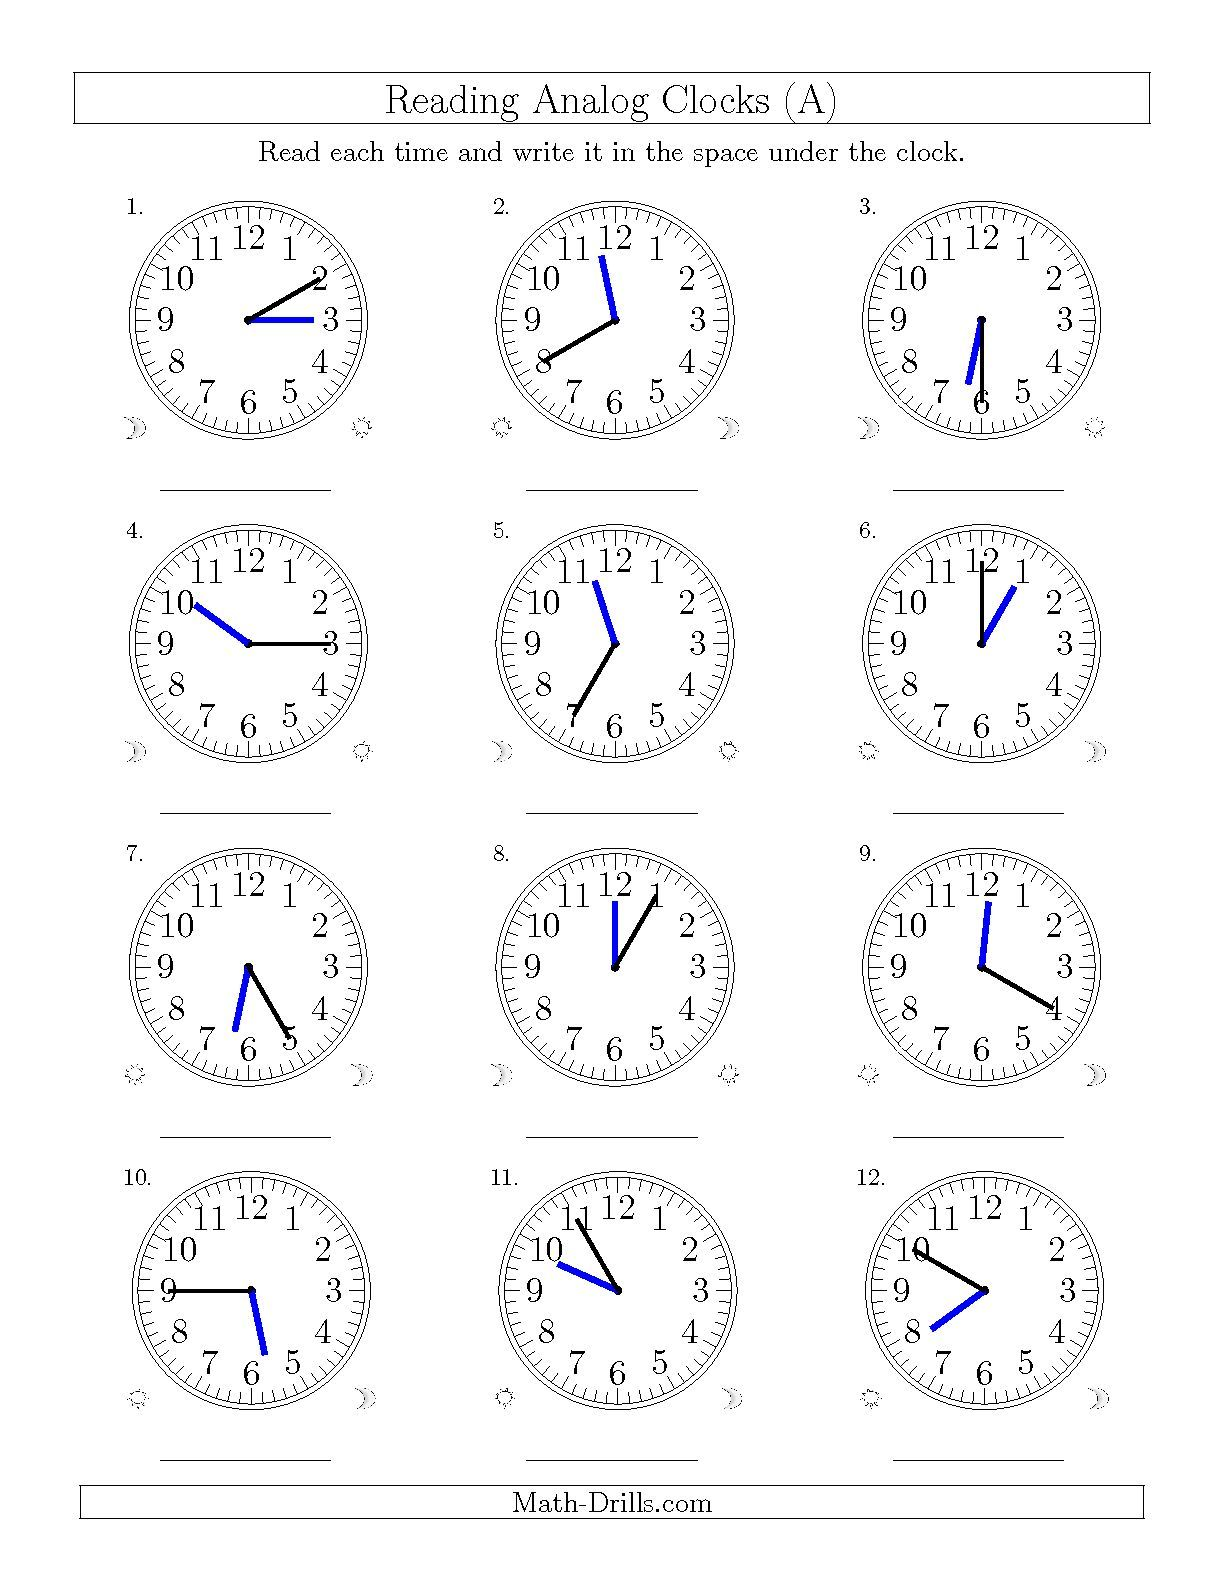 worksheet Analogue Time Worksheet the reading time on 12 hour analog clocks in 5 minute intervals a worksheet